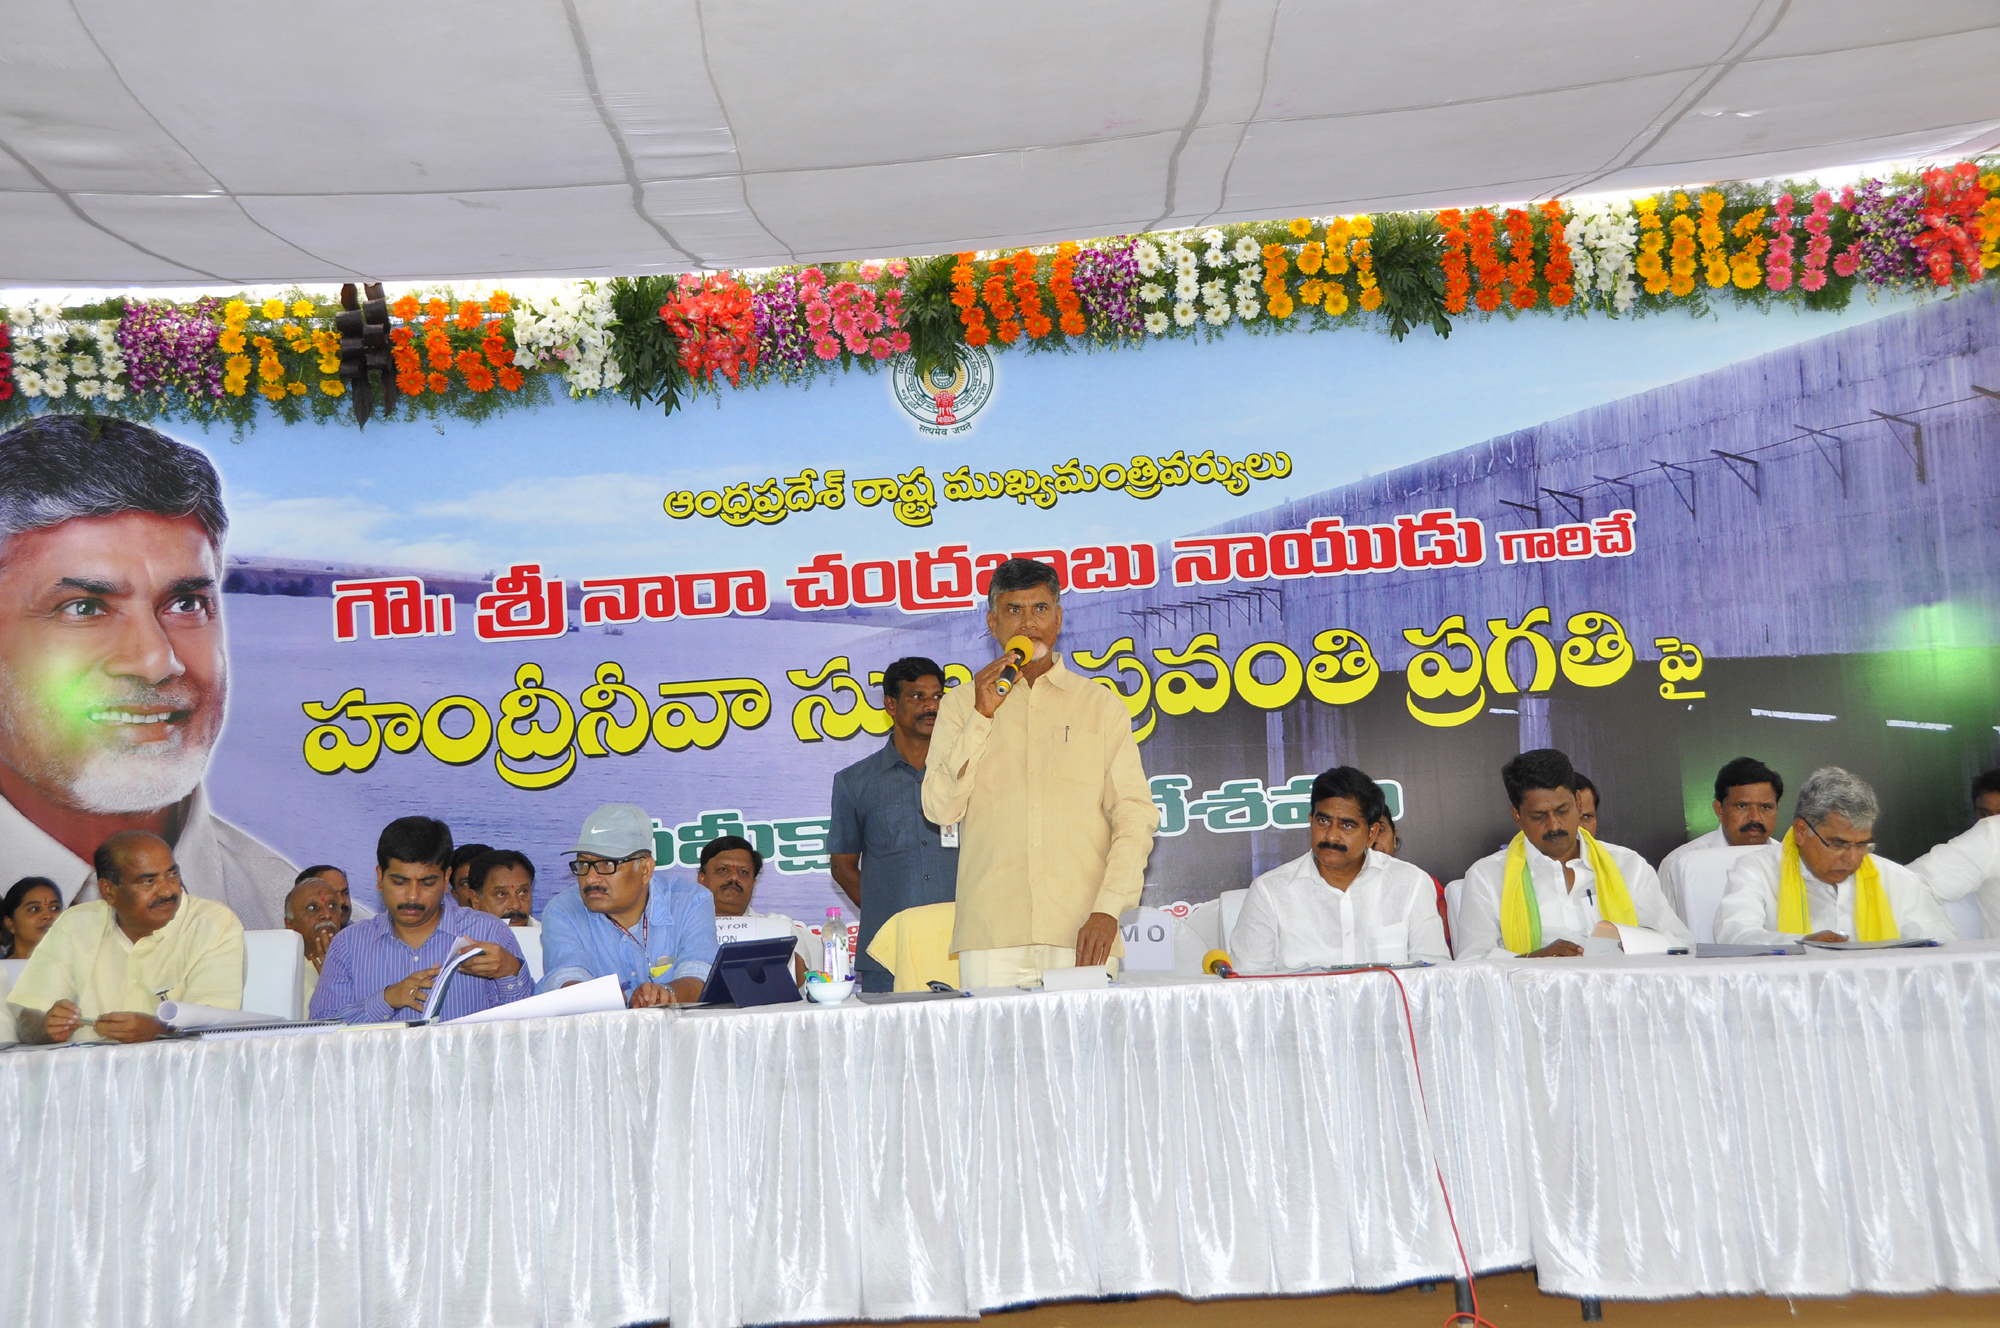 AP CM Chandra Babu Visit Jeedipalli Reserver Dam Public Meeting on HNSS Works with HNSS Officers, Contractors at Jeedipalli Reserver Dam on 3.7.2015.